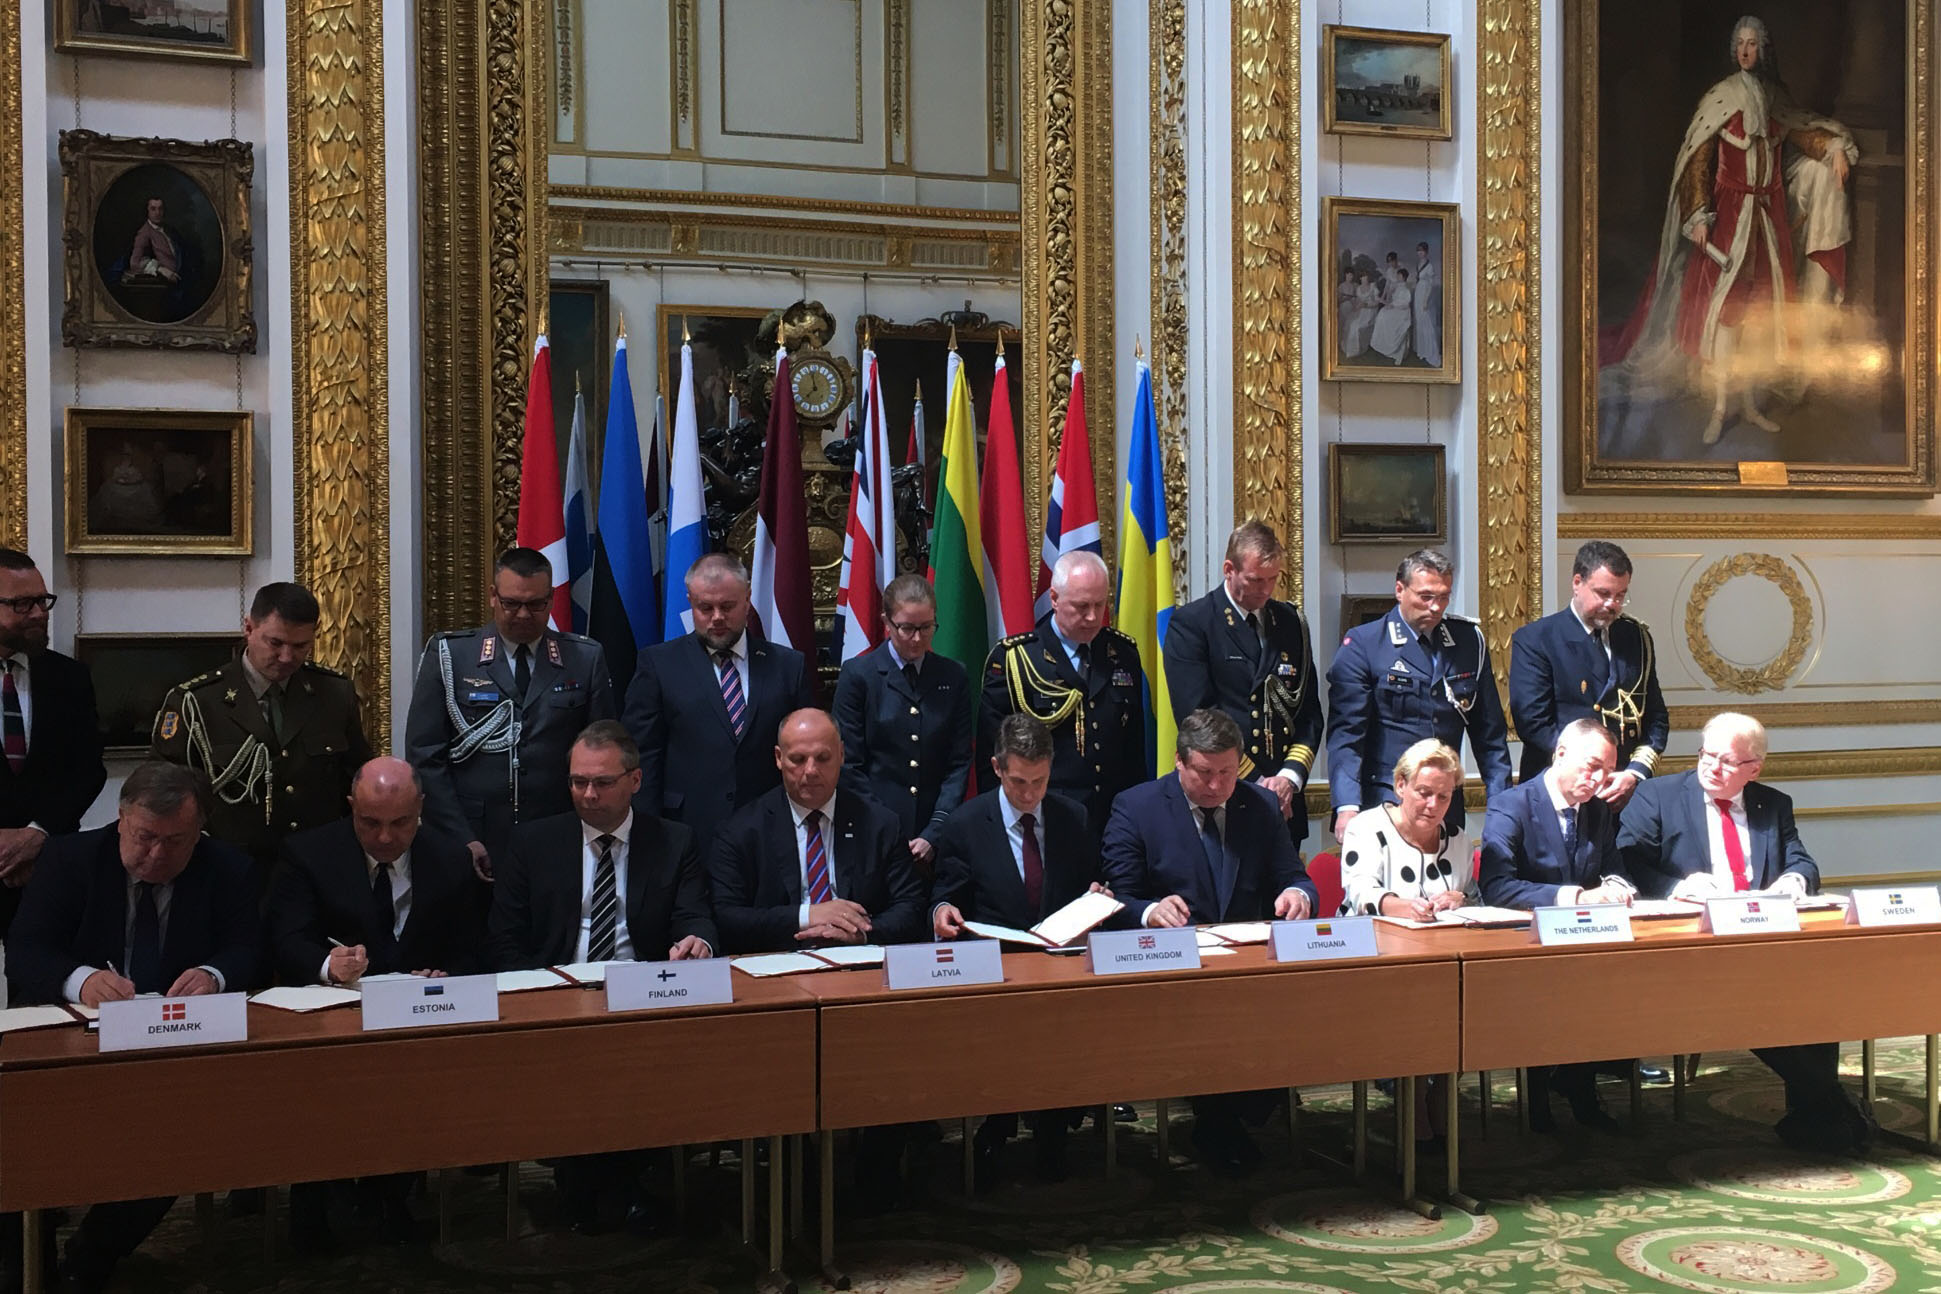 At the meeting, the defence ministers discussed the future vision of JEF, with the agreed view that JEF is an important building block of the security policy cooperation in northern Europe.